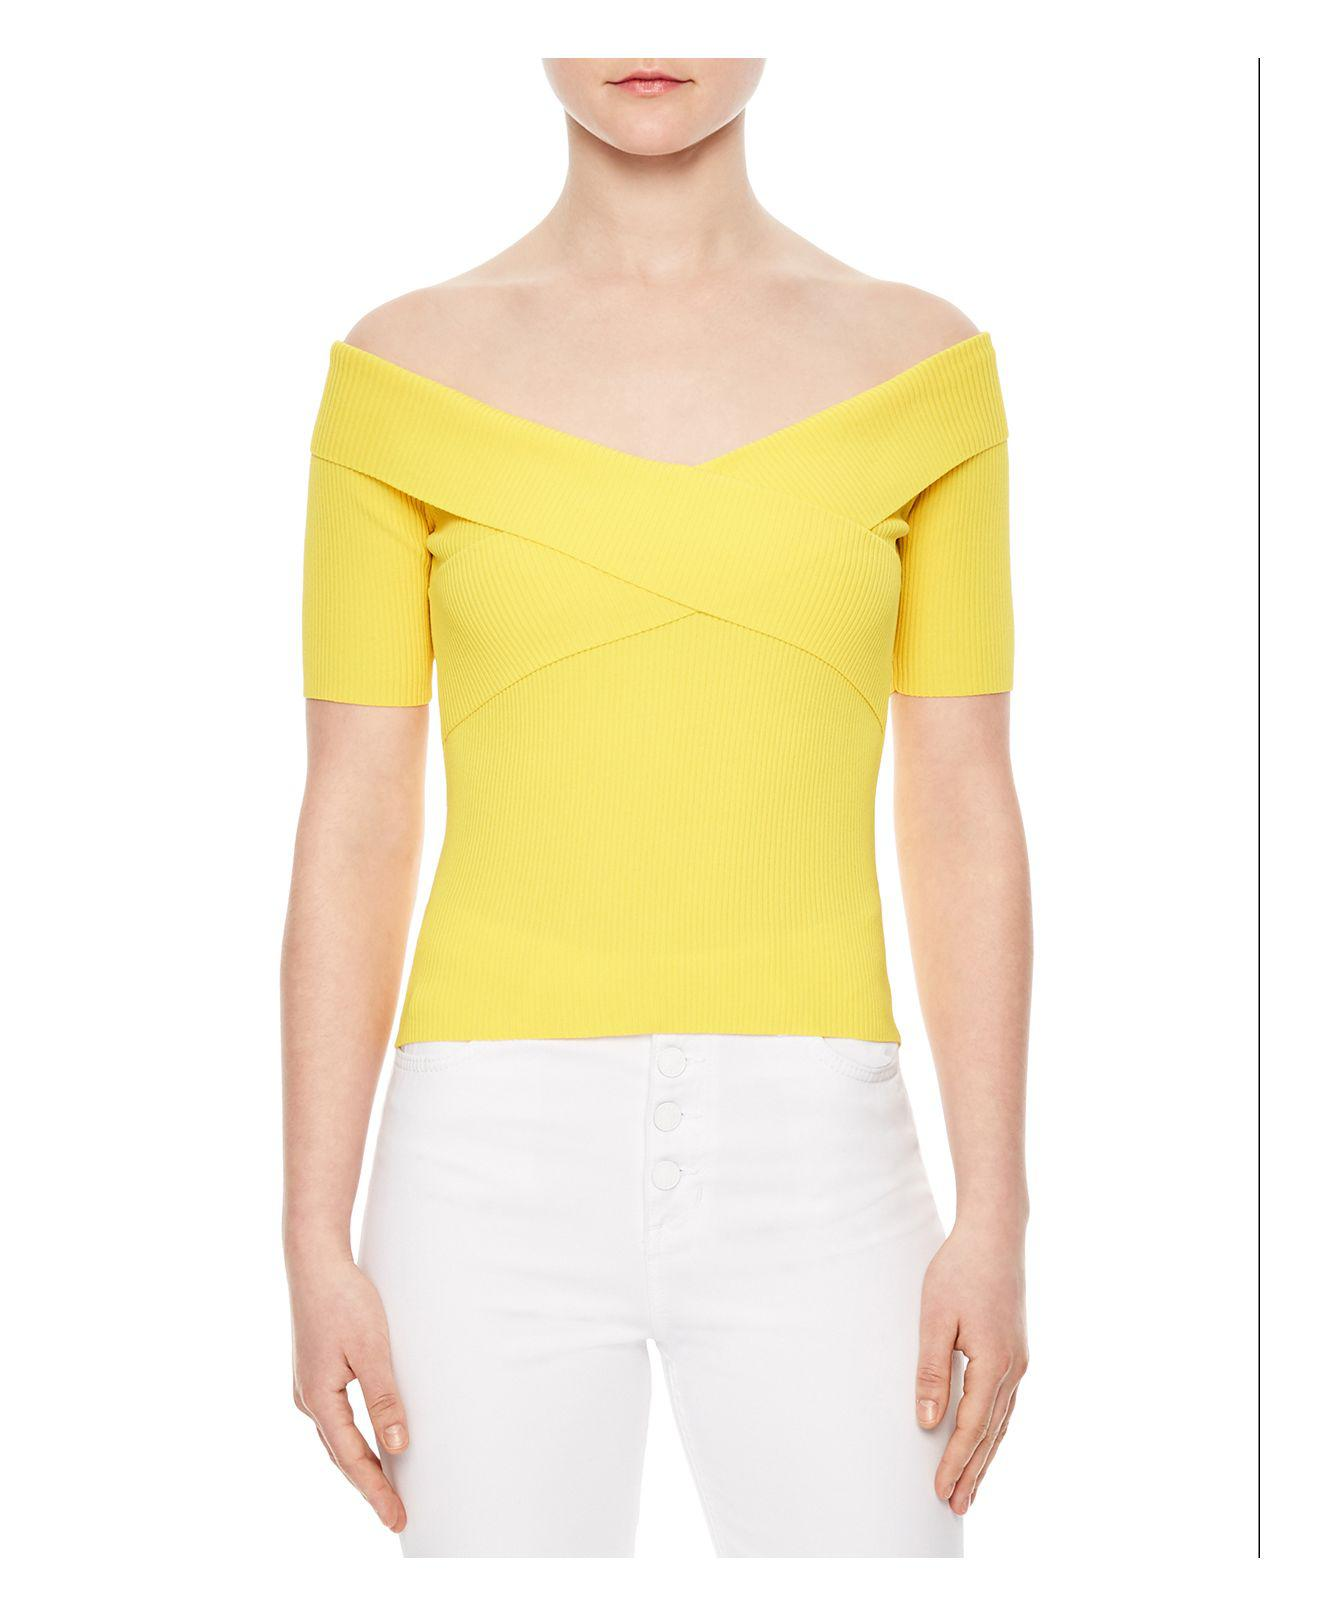 Sandro Galina Off-the-shoulder Sweater in Yellow | Lyst